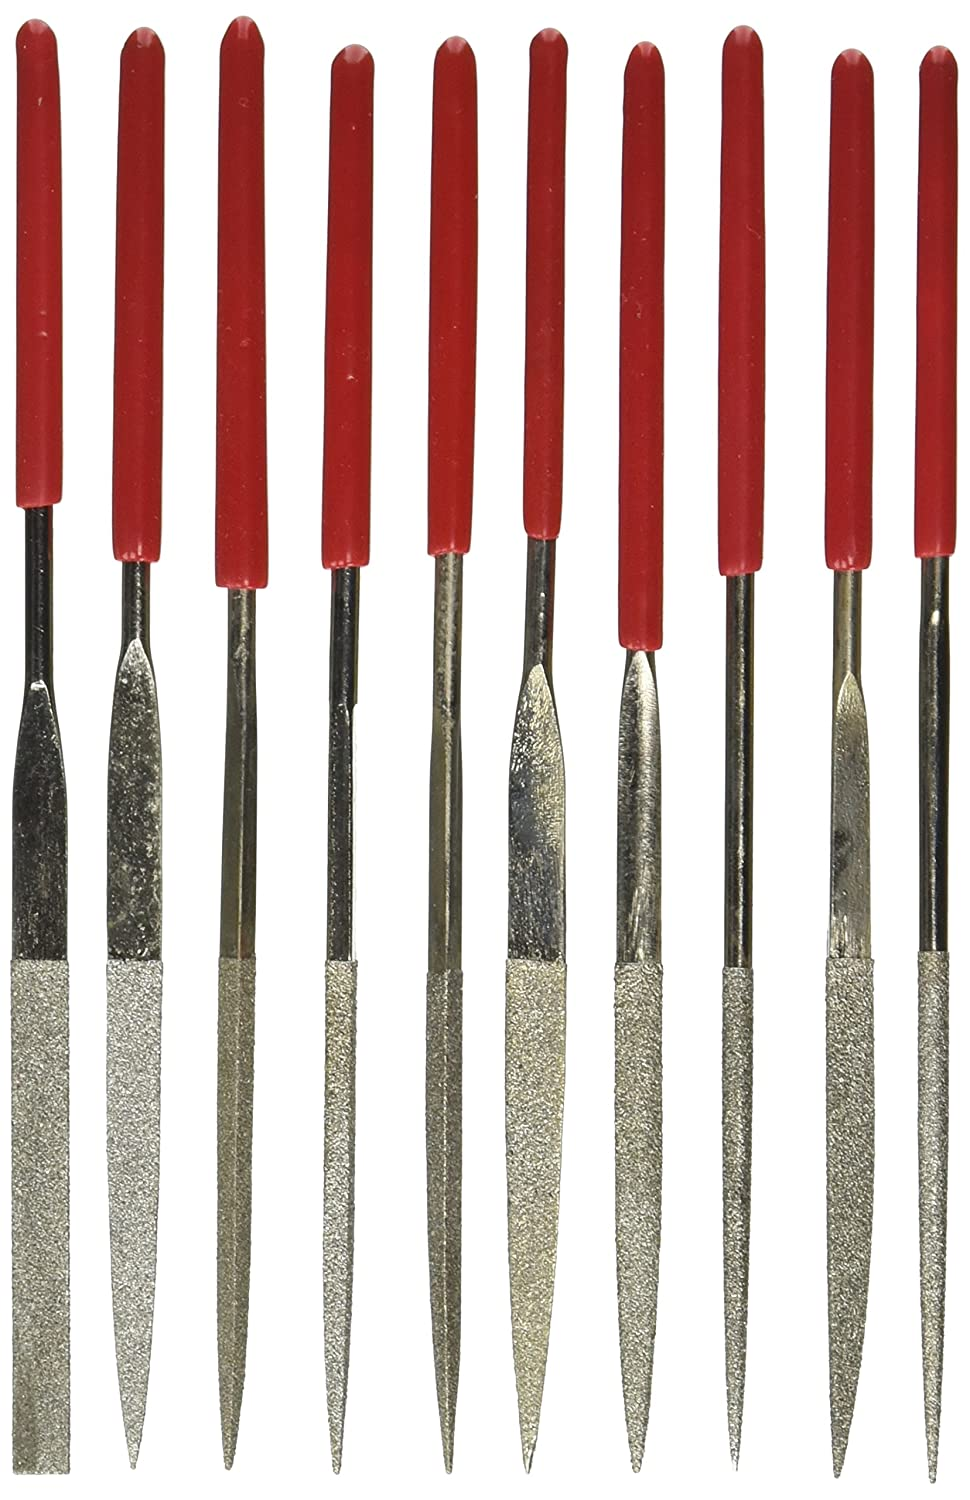 Silver Tone Red 3mm x 140mm Uxcell Lapidary Jeweler Round Rat Tail Diamond Files